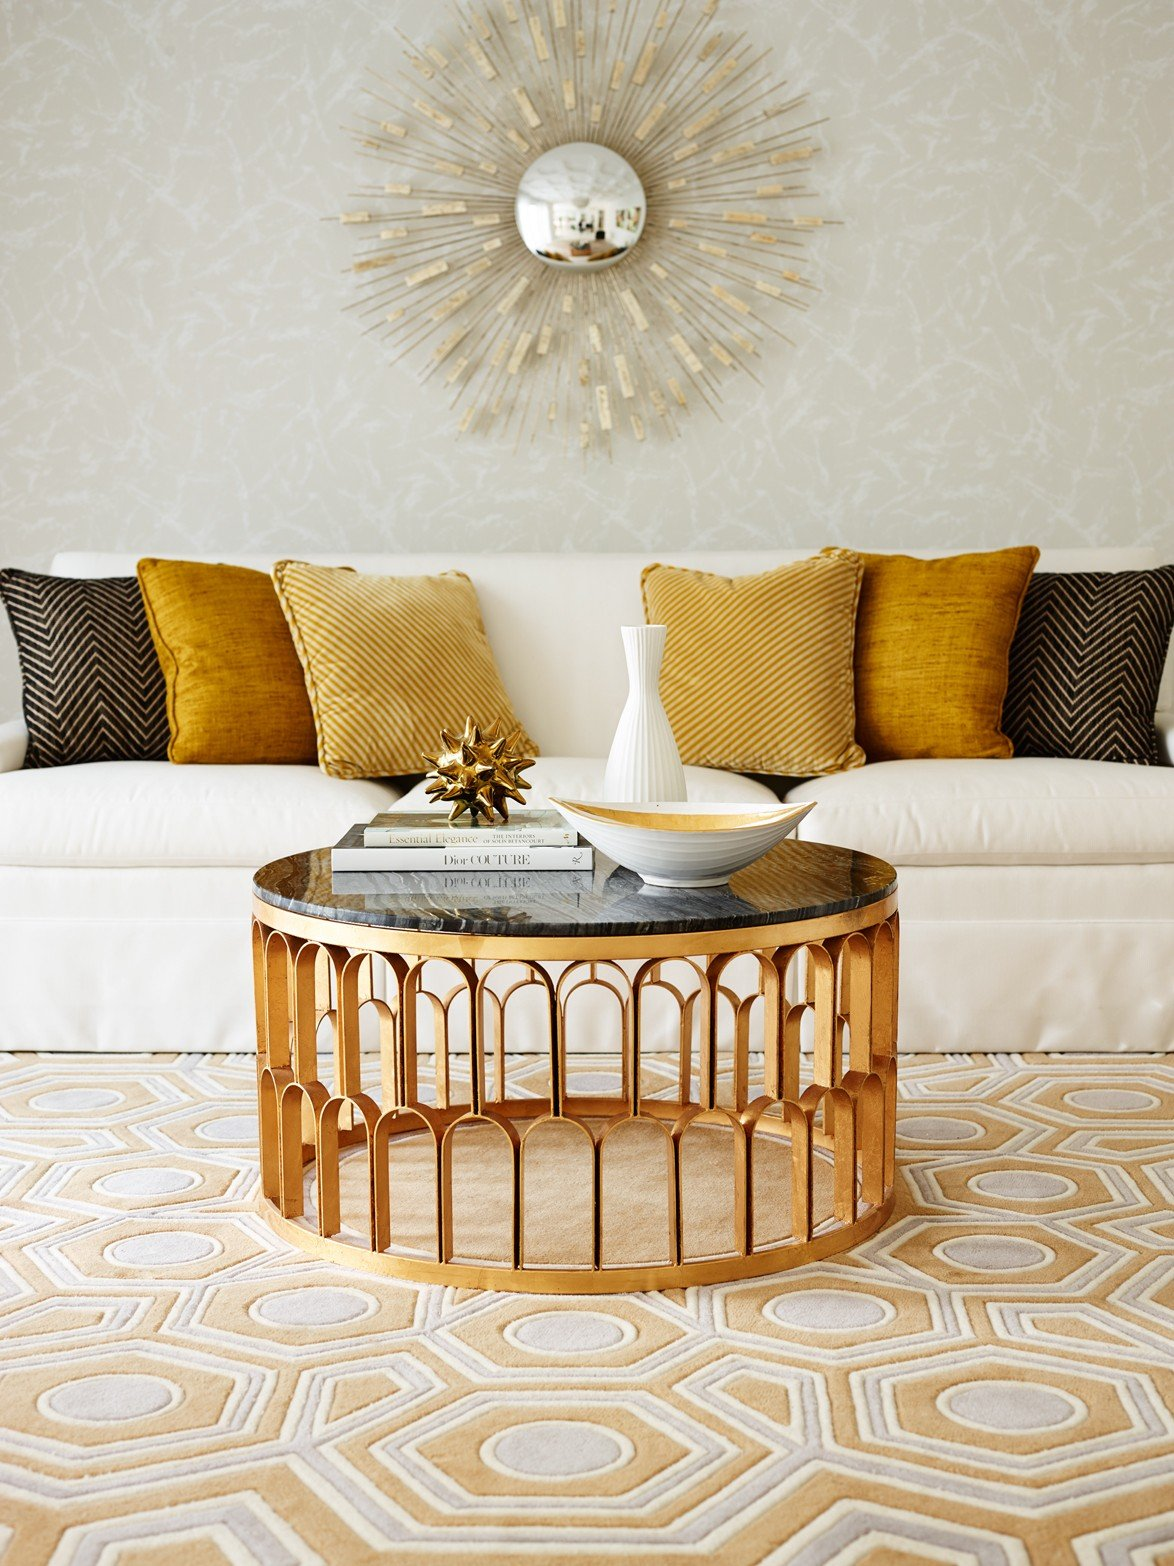 Outstanding Living Rooms by Greg Natale to Inspire your Home living rooms by greg natale Outstanding Living Rooms by Greg Natale to Inspire your Home Outstanding Living Rooms by Greg Natale to Inspire your Home3